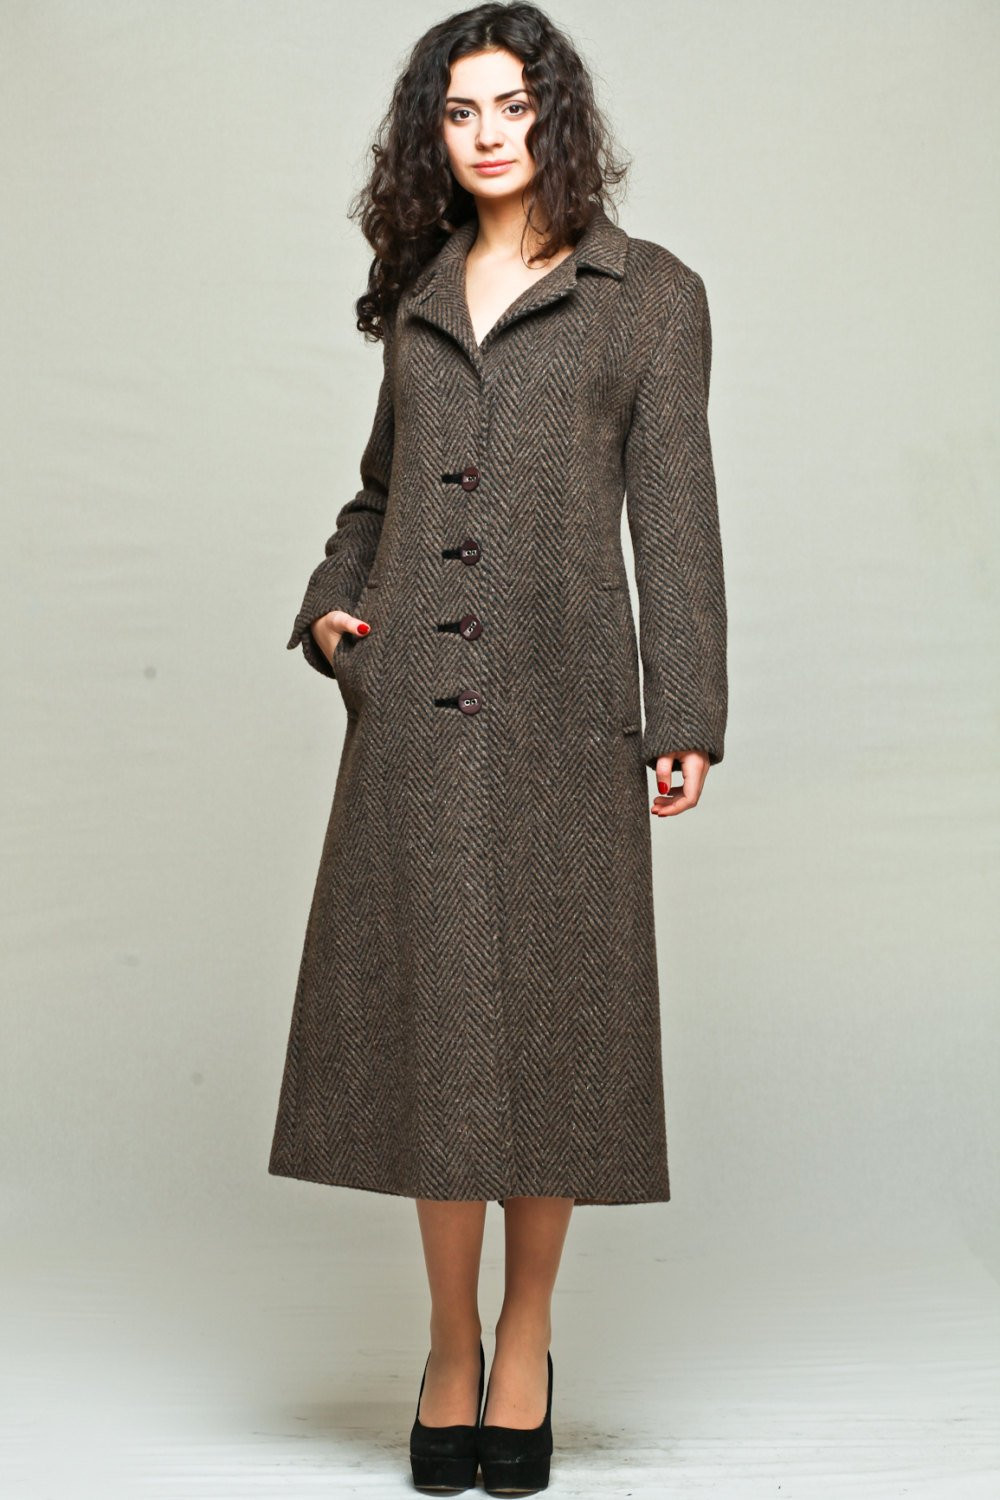 Wool for Sale Inspirational La S Long Wool Coats Sale Jacketin Of Amazing 50 Models Wool for Sale